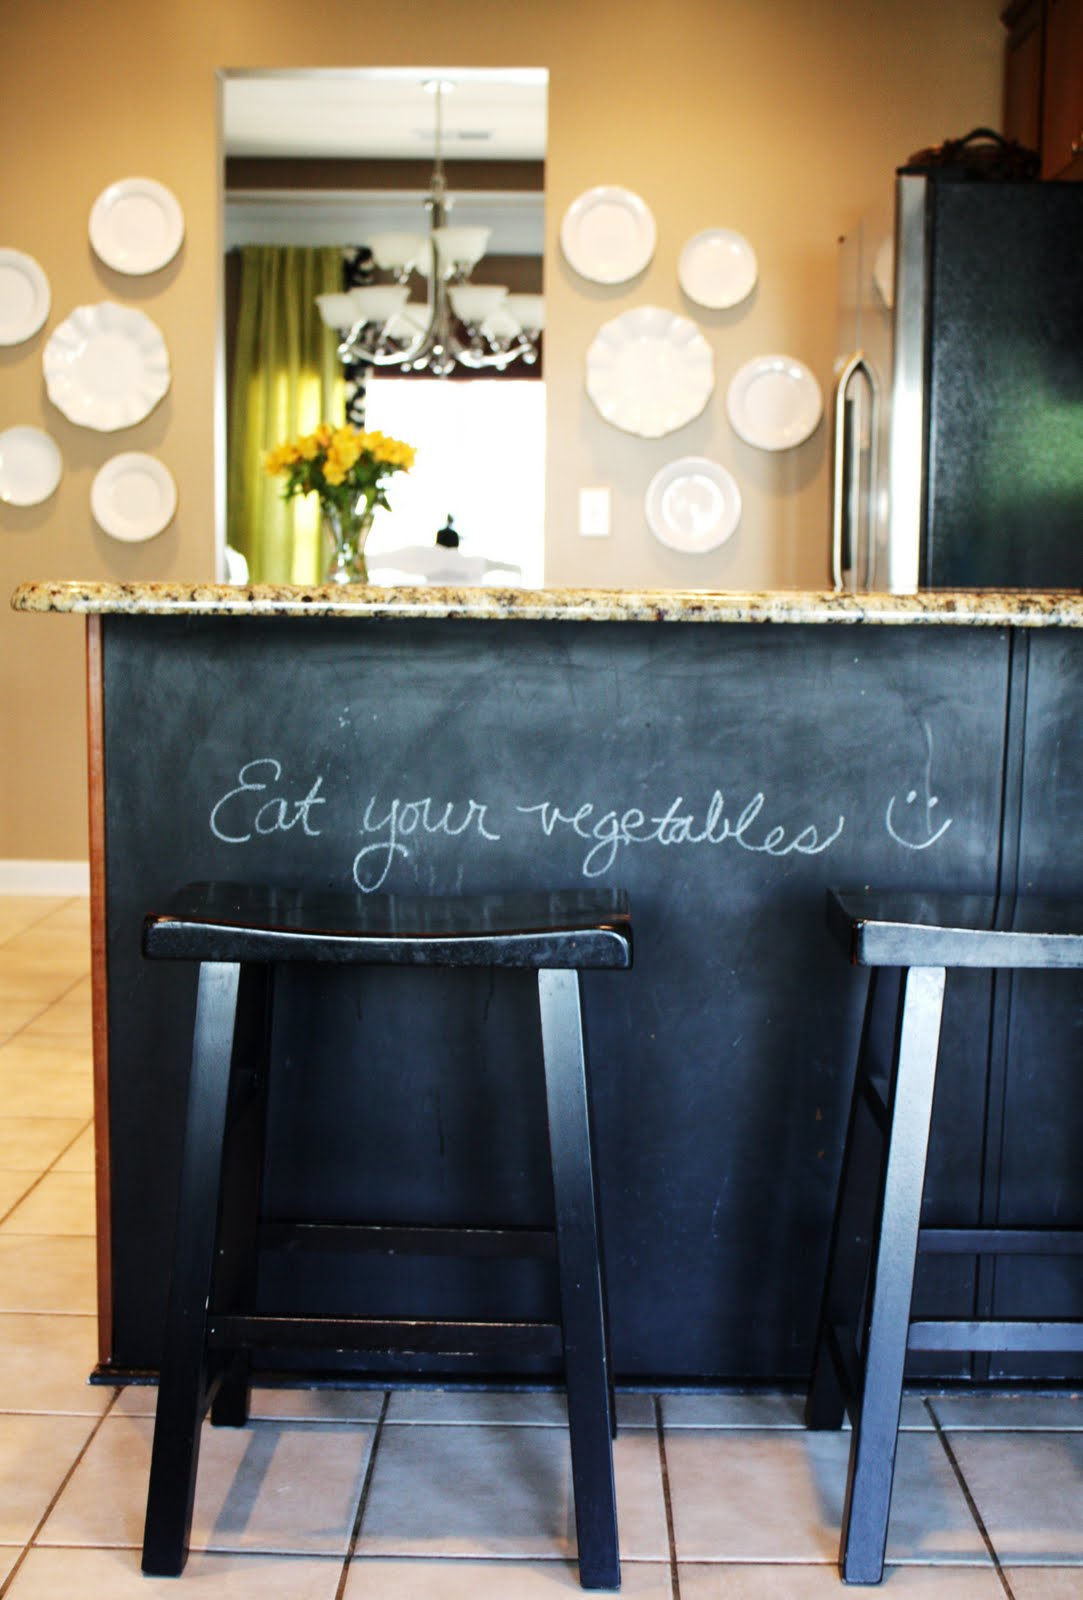 Our Kitchen: Chalkboard Paint Under the Counter - Emily A. Clark